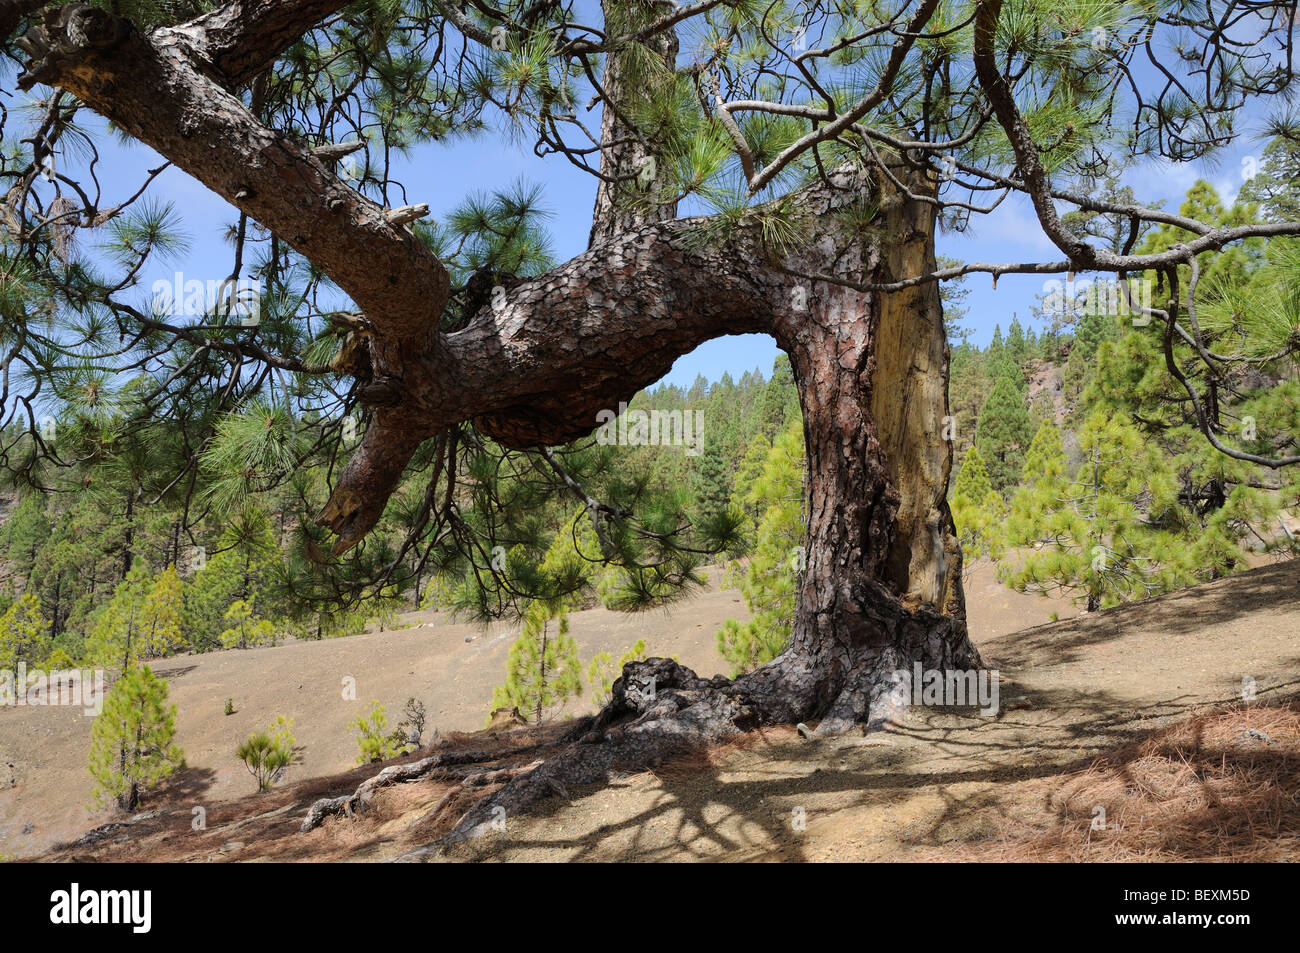 Weird pine tree in the forest. - Stock Image